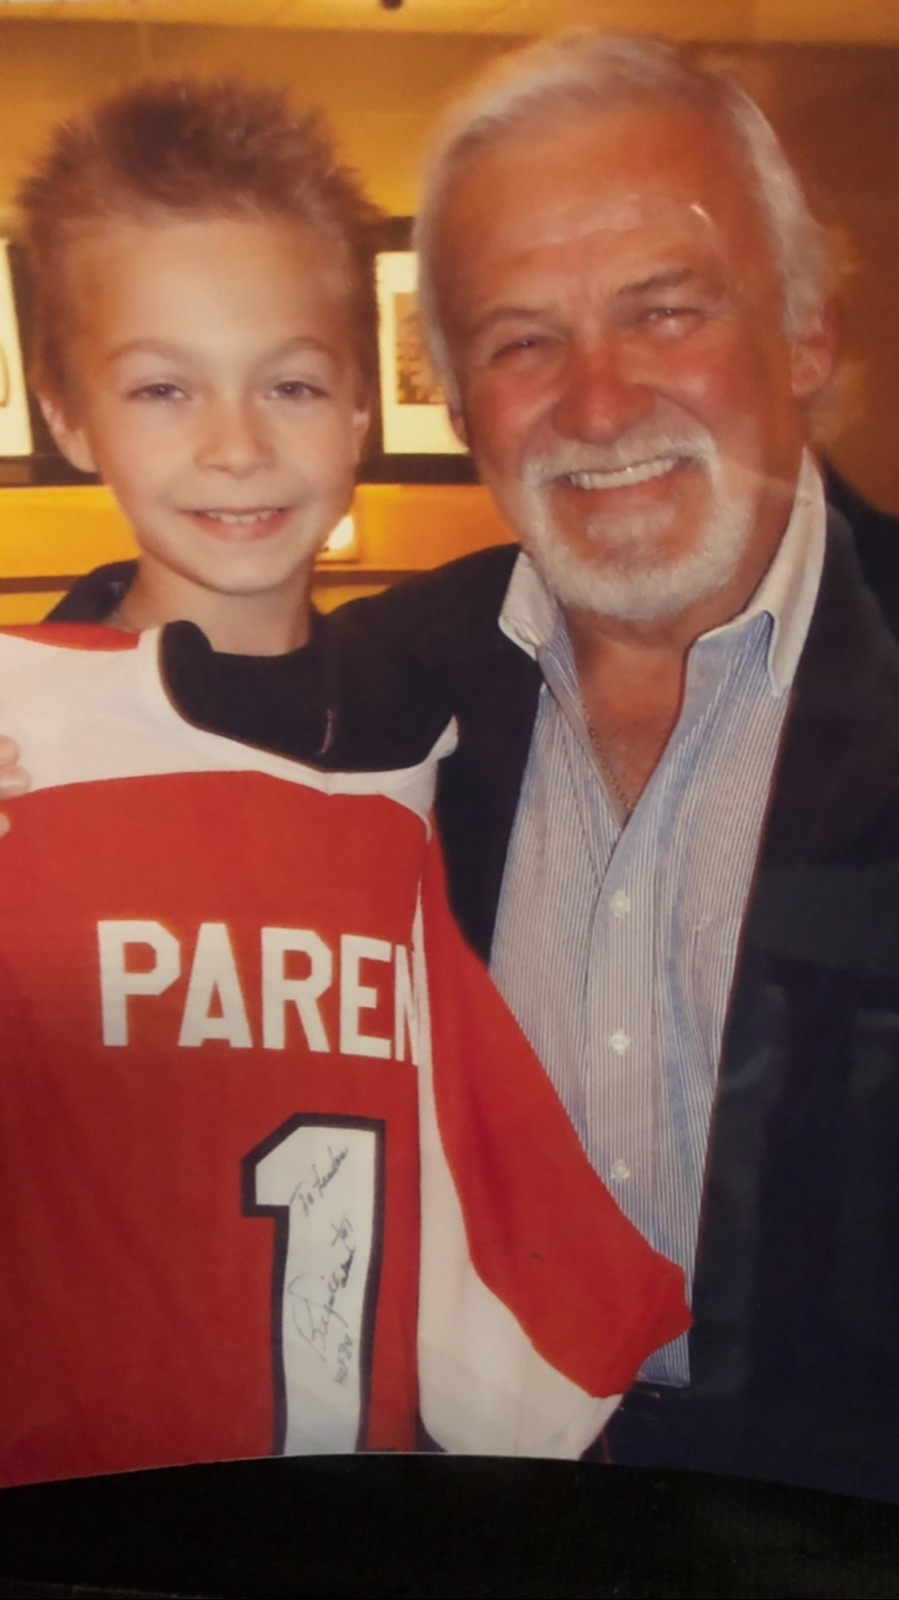 7 year-old Landen meeting Bernie Parent and claiming his prize for winning the bidding war